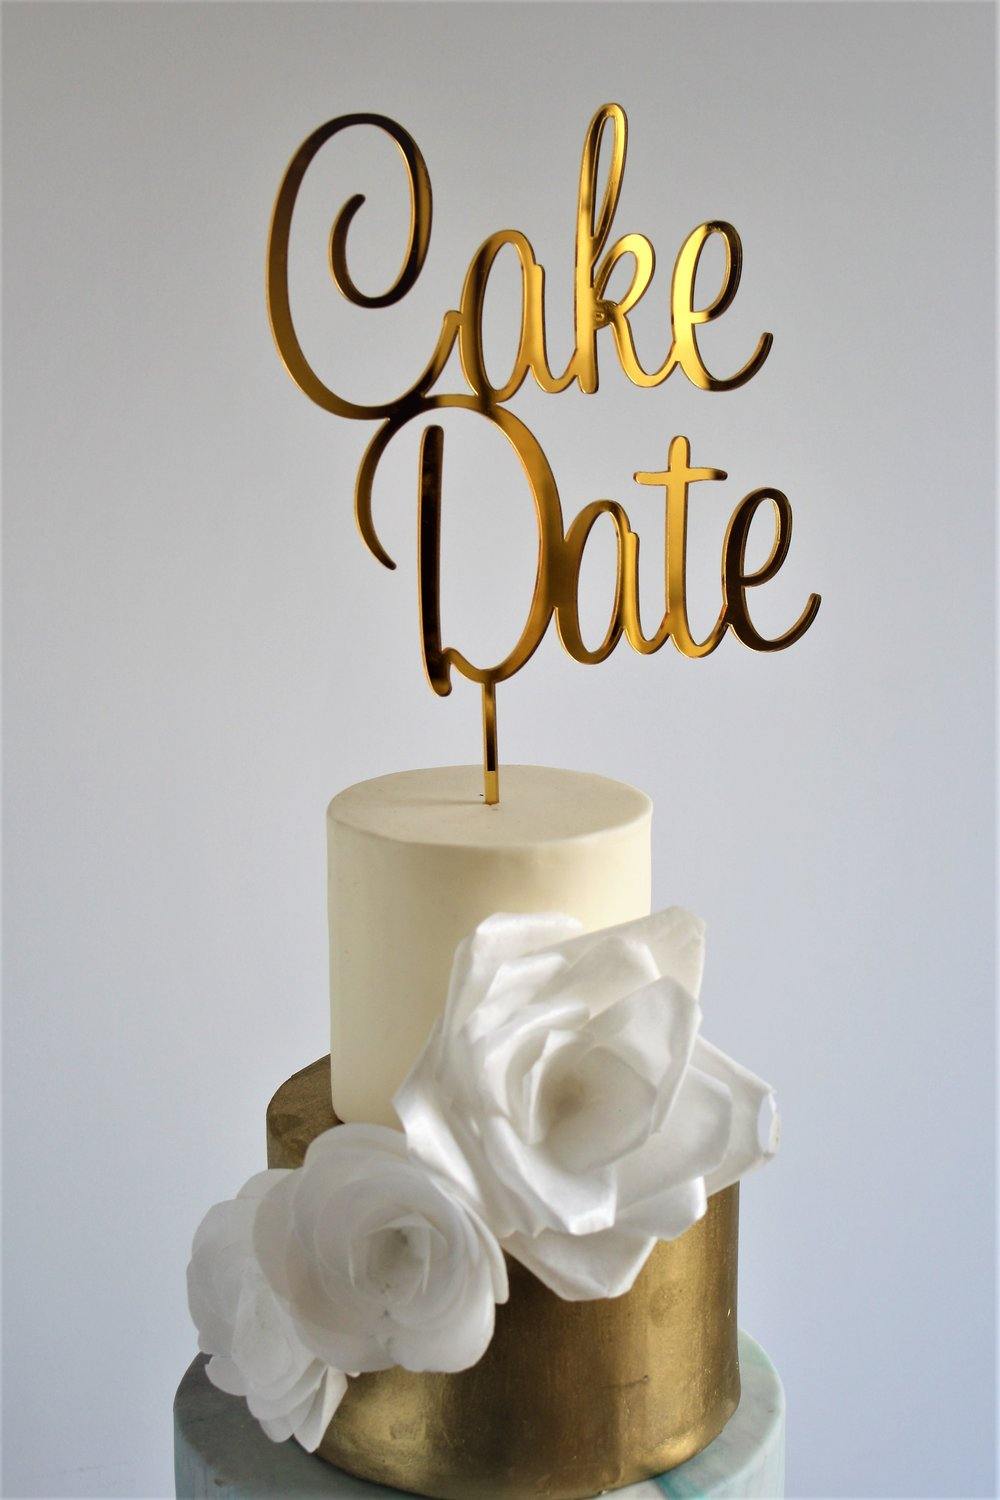 Gold & marble cake